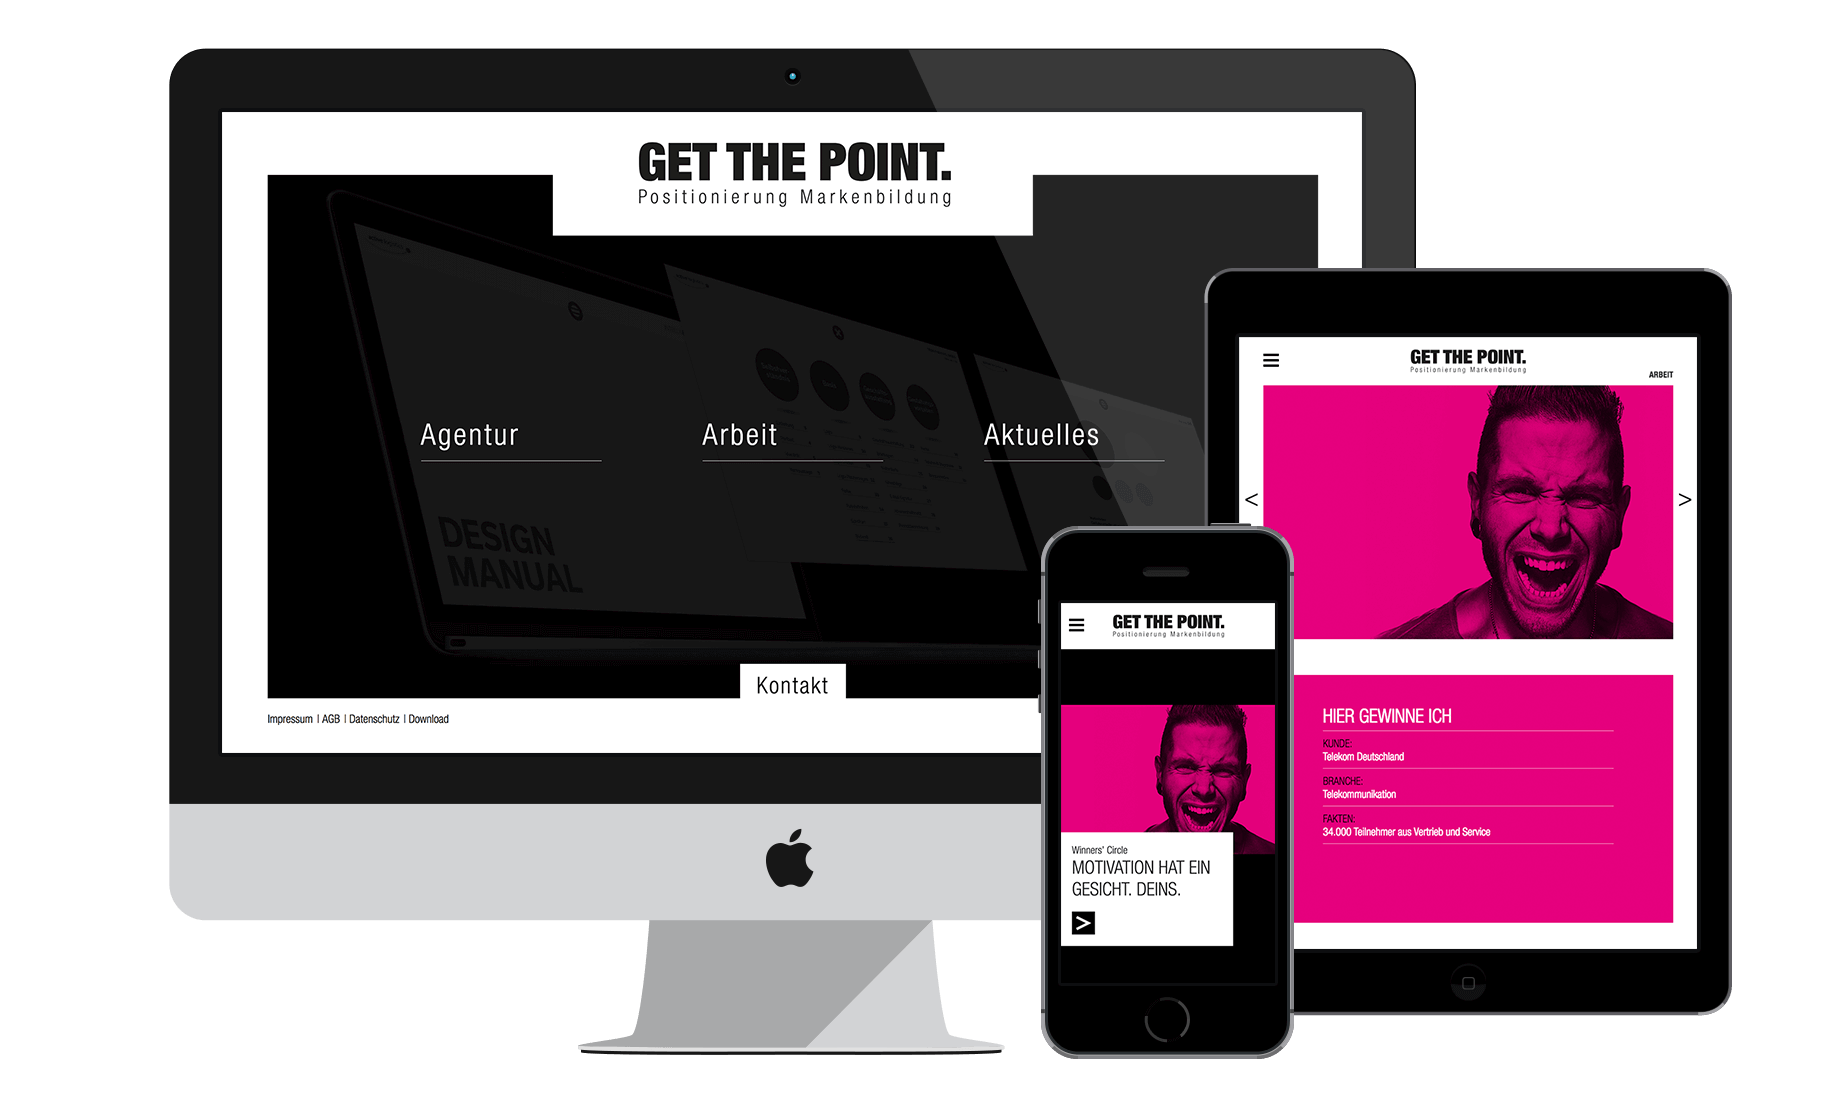 Internetagentur Studio Orange launcht getthepoint.de